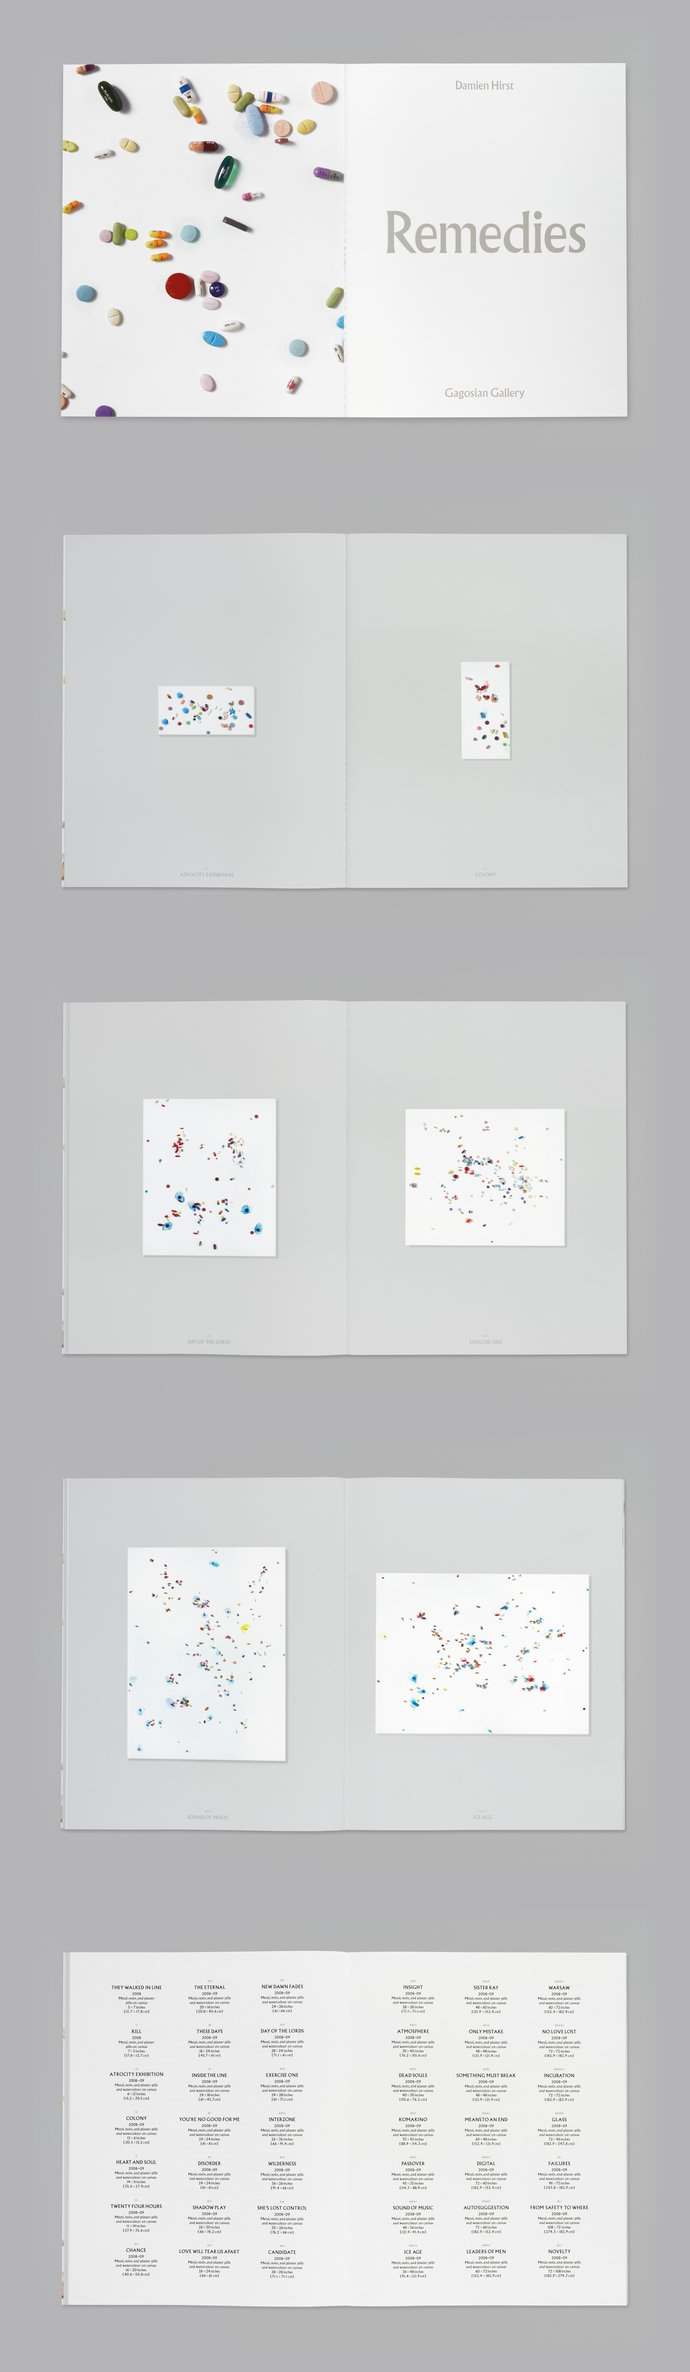 Gagosian – Damien Hirst: Poisons + Remedies, 2011 (Publication), image 6